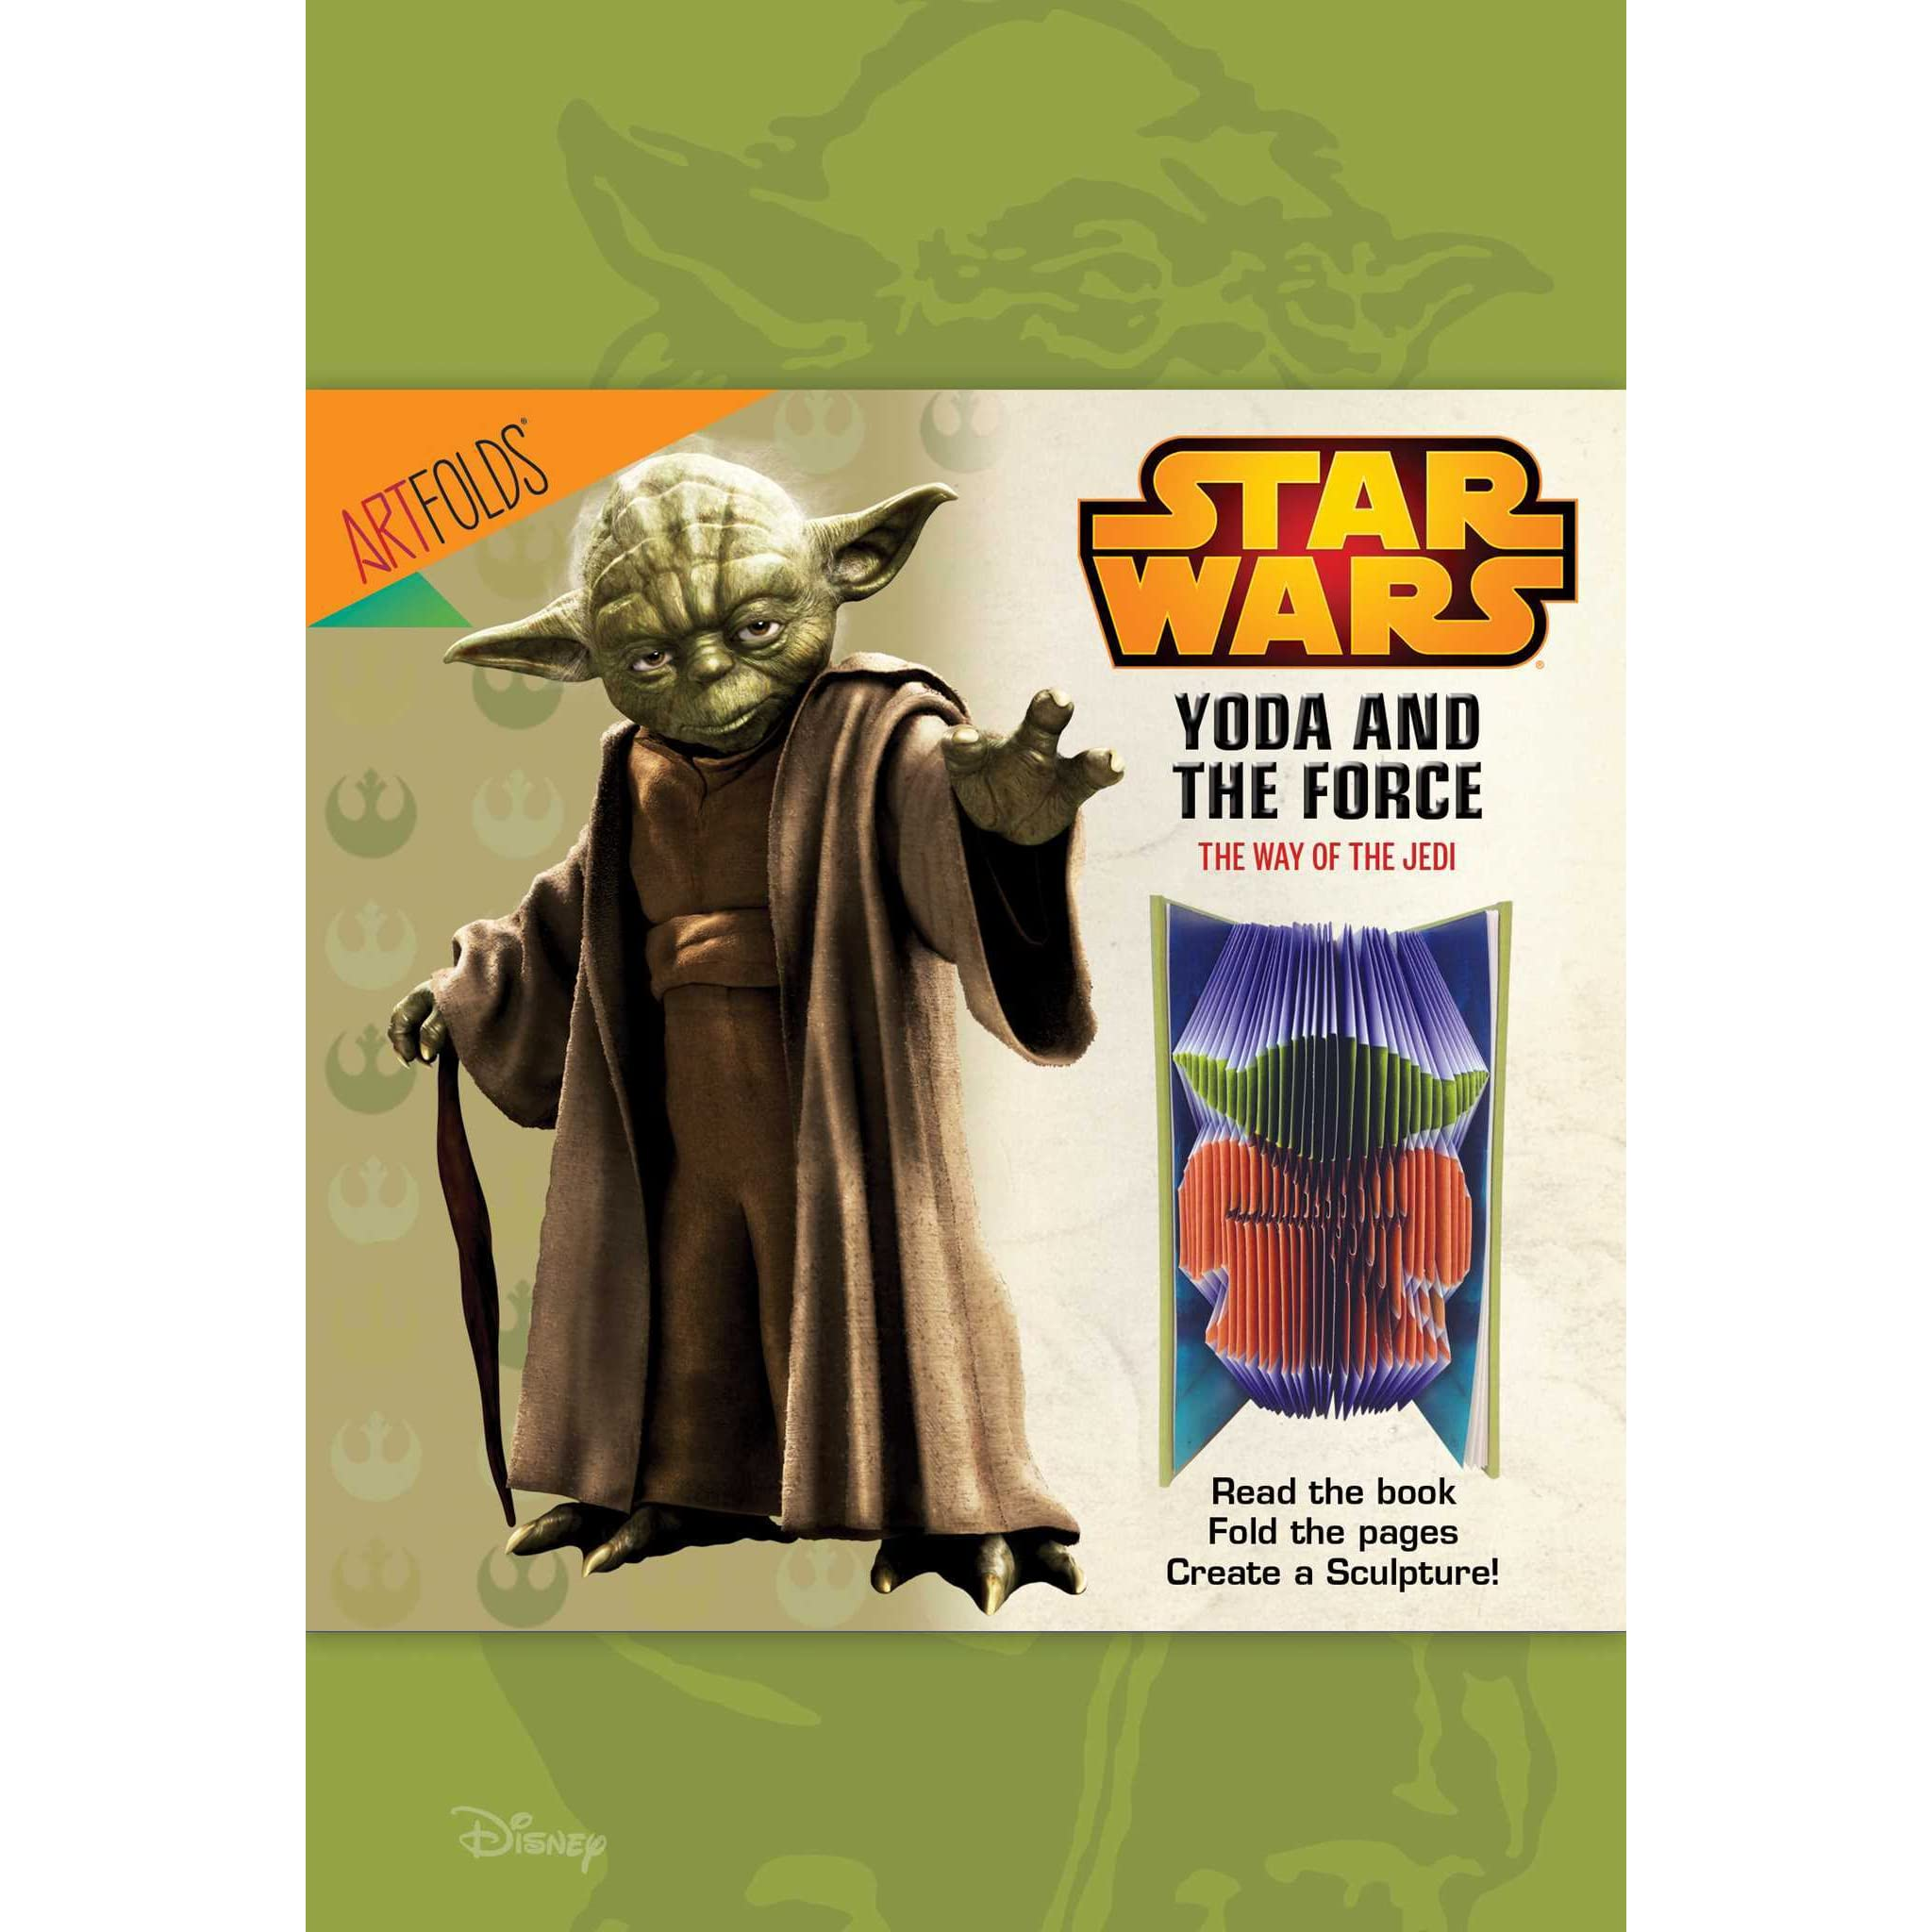 Artfolds Yoda Yoda And The Force By Readers Digest Association